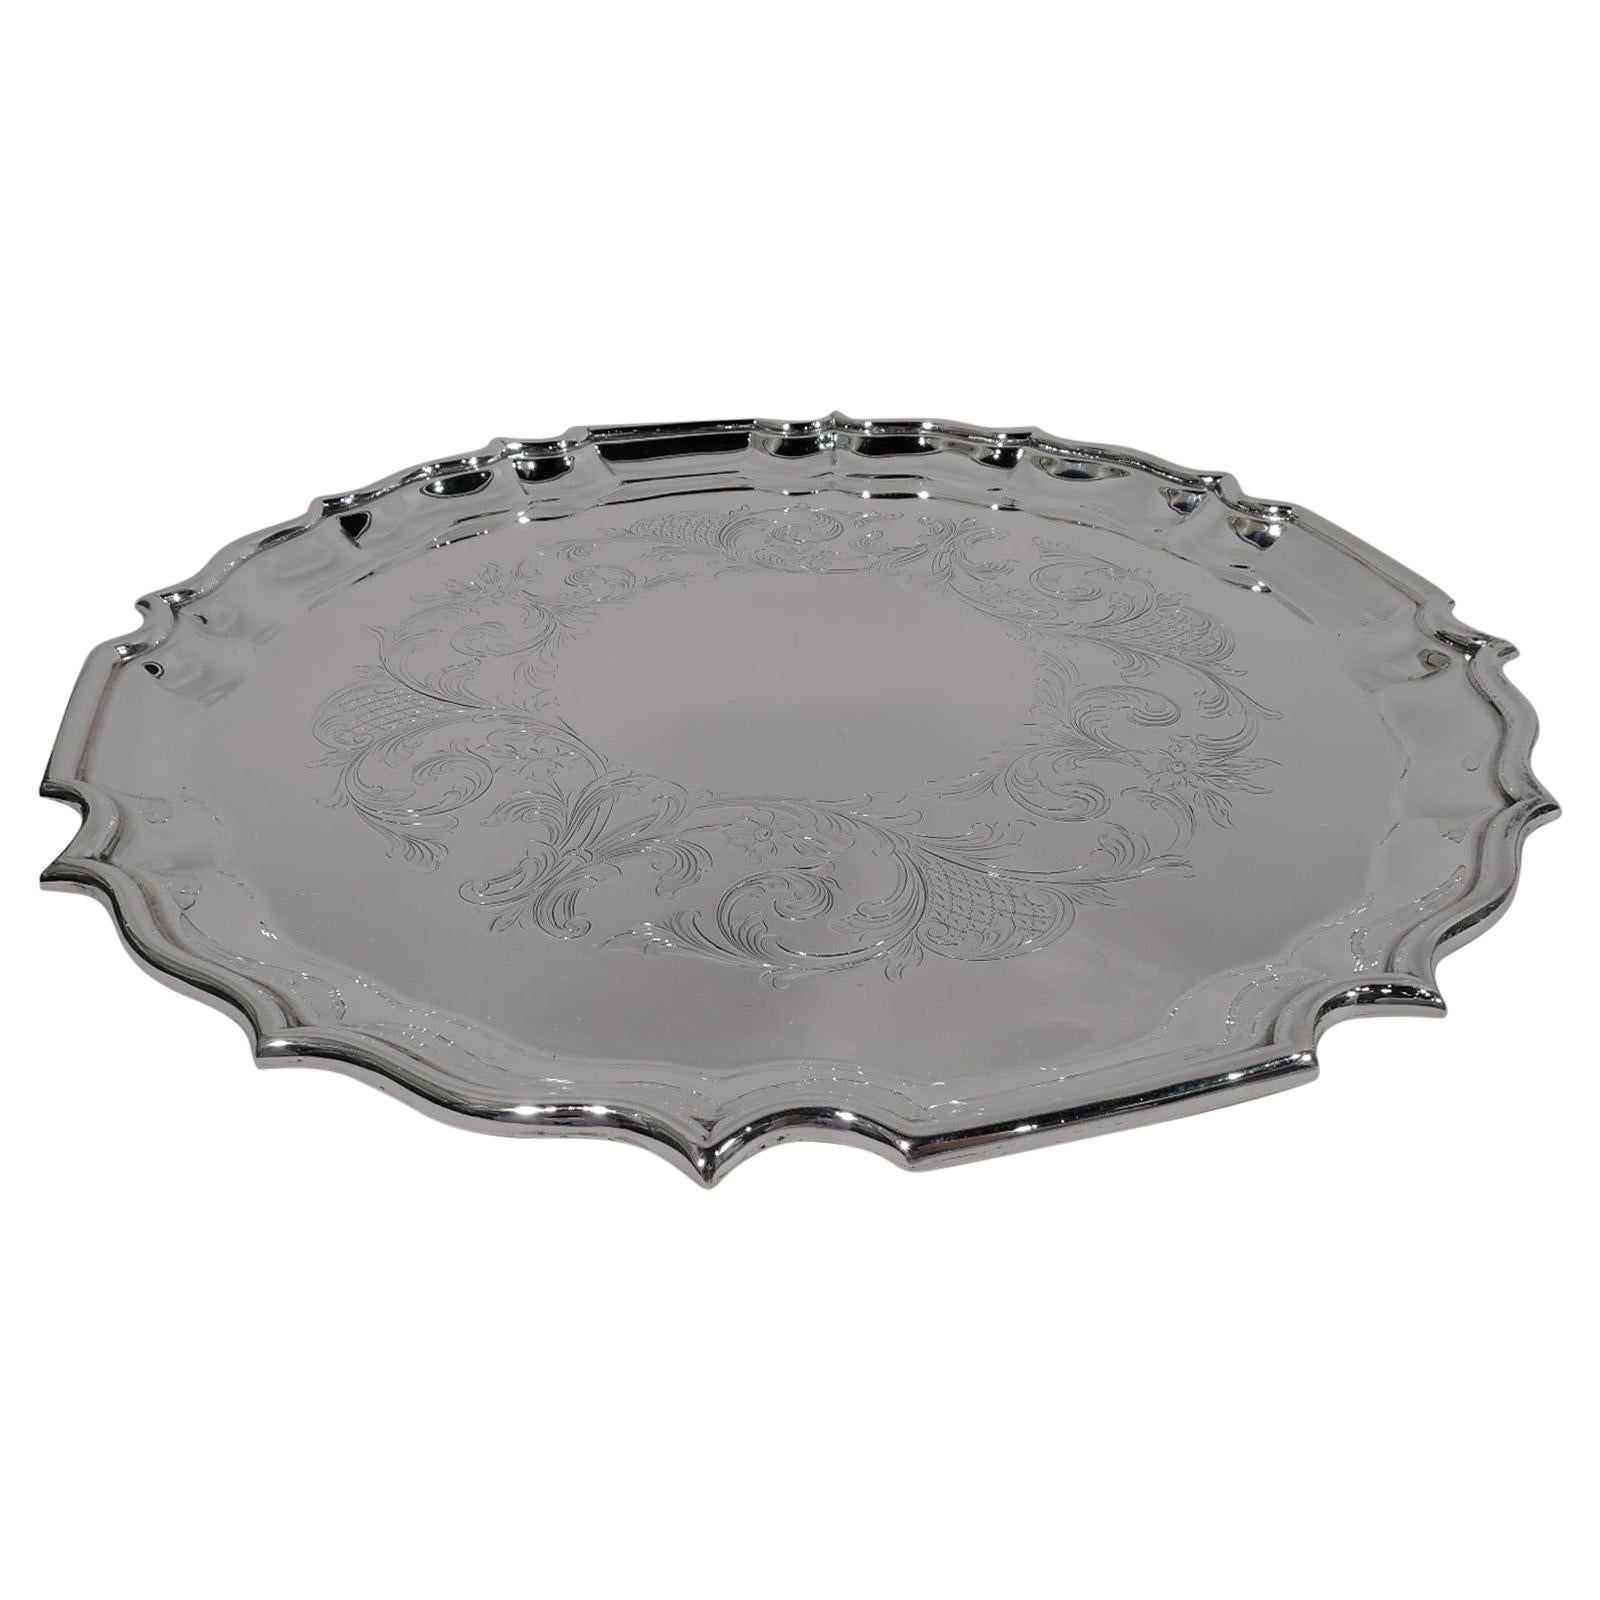 Birks Sterling Silver Tray with Georgian Piecrust Rim